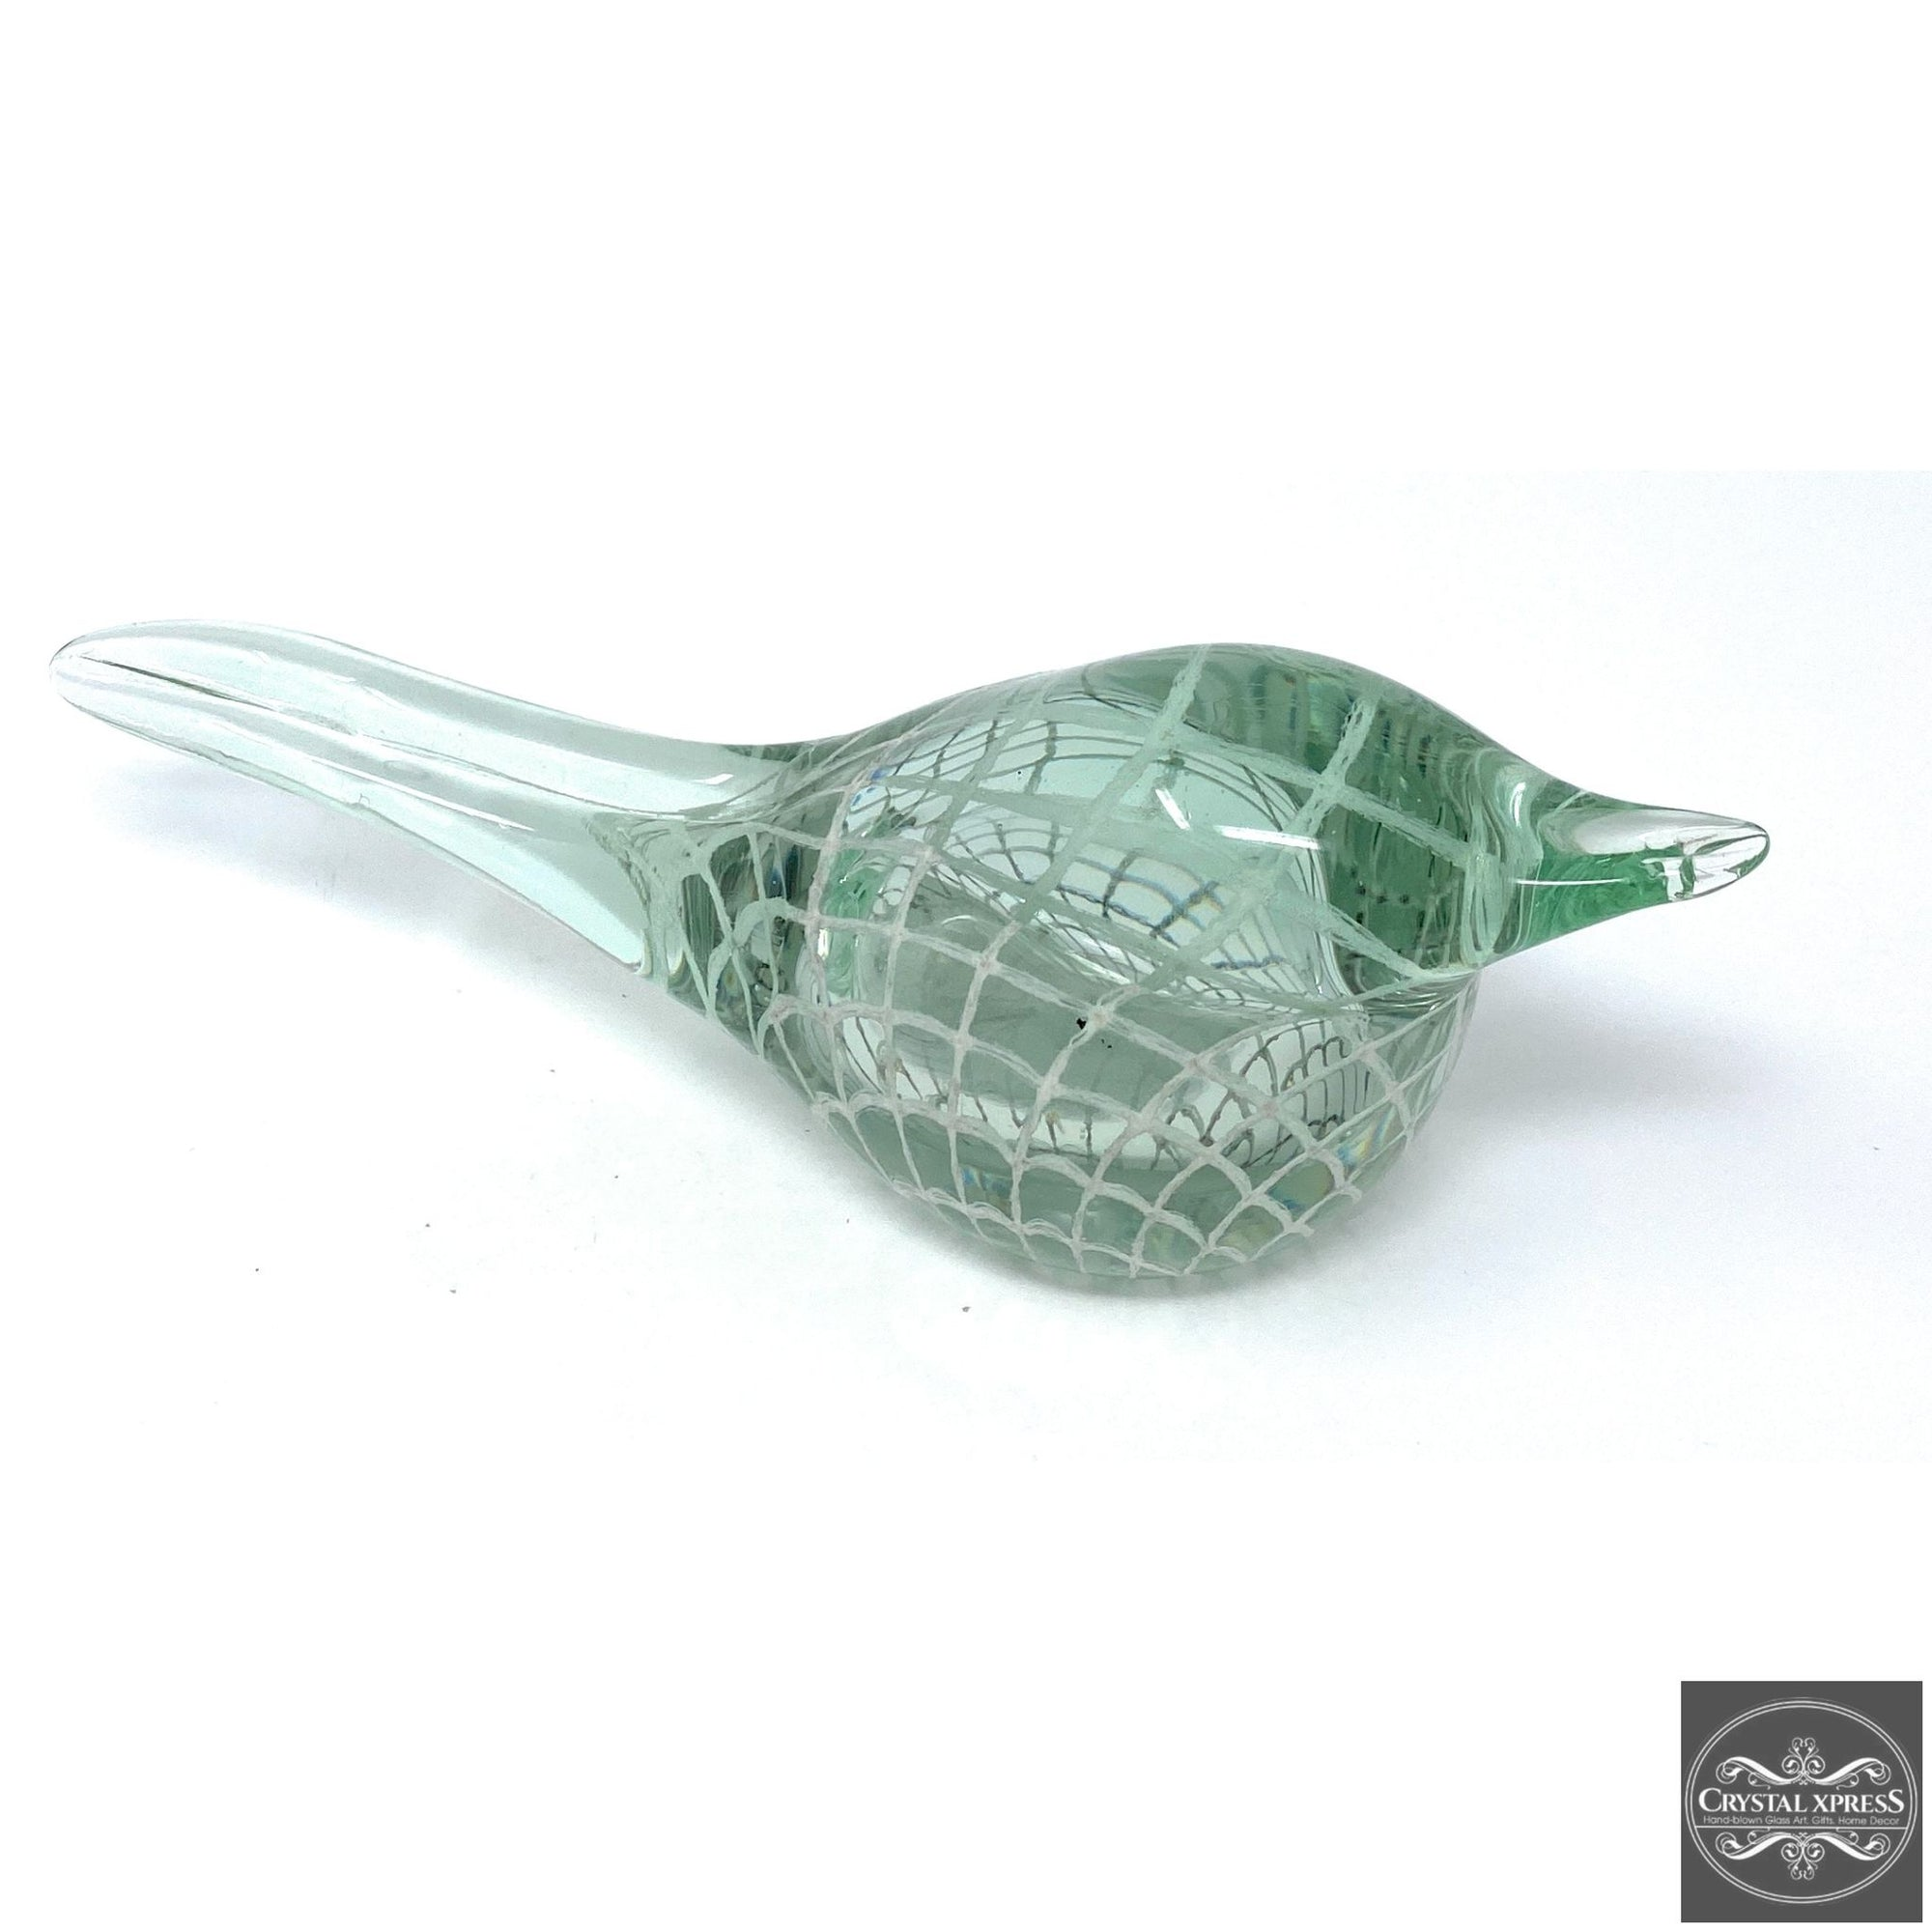 "New 8"" Hand Blown Glass Light Green Glass Bird Sculpture Figurine ArtCrystal Xpress"